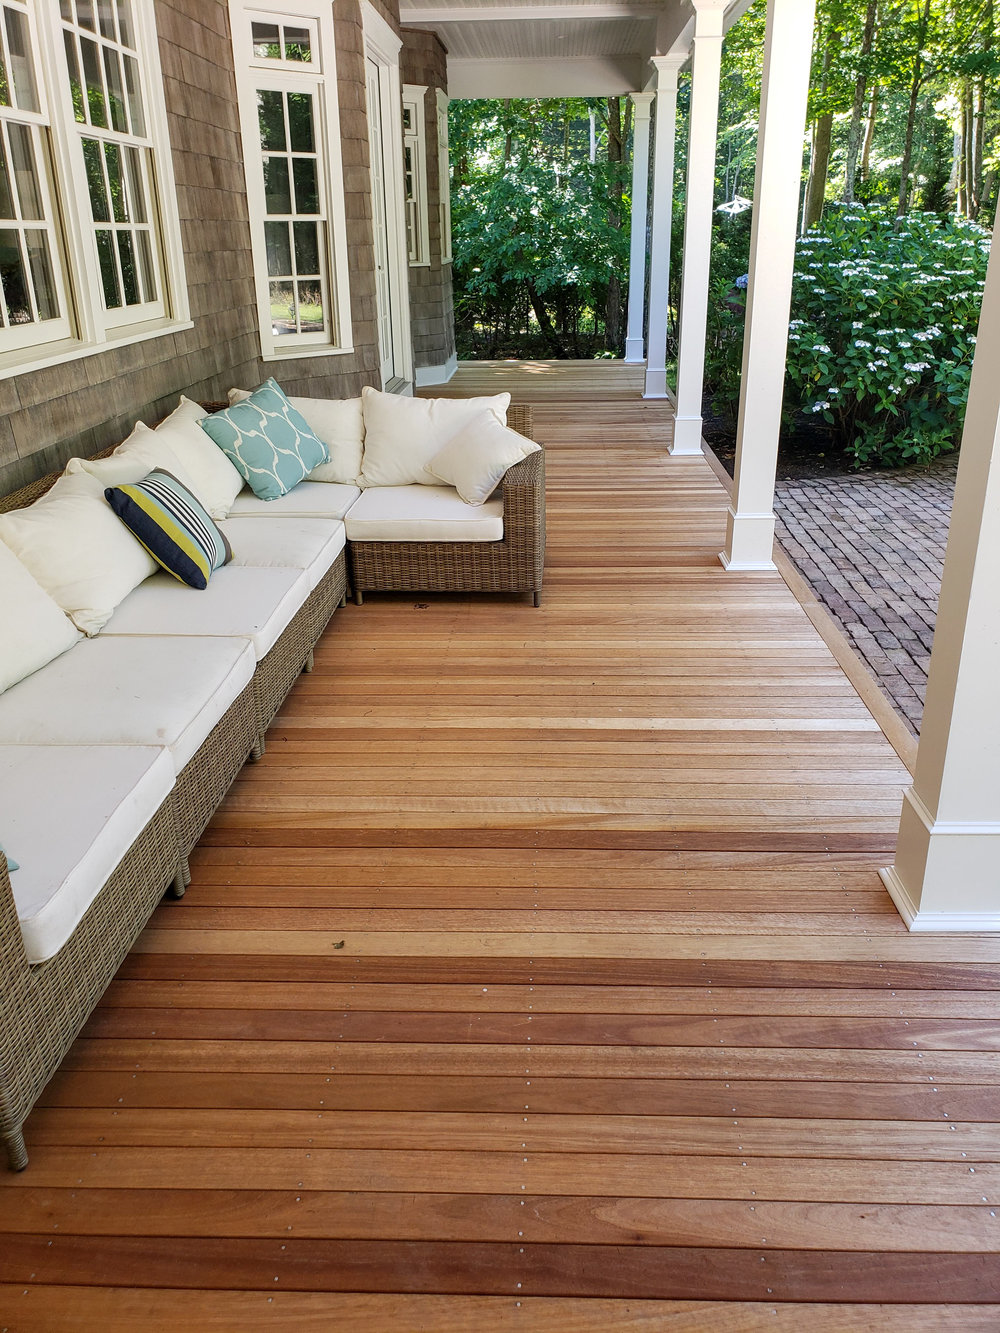 Mahogany Deck Resurface & PVC Column Install After